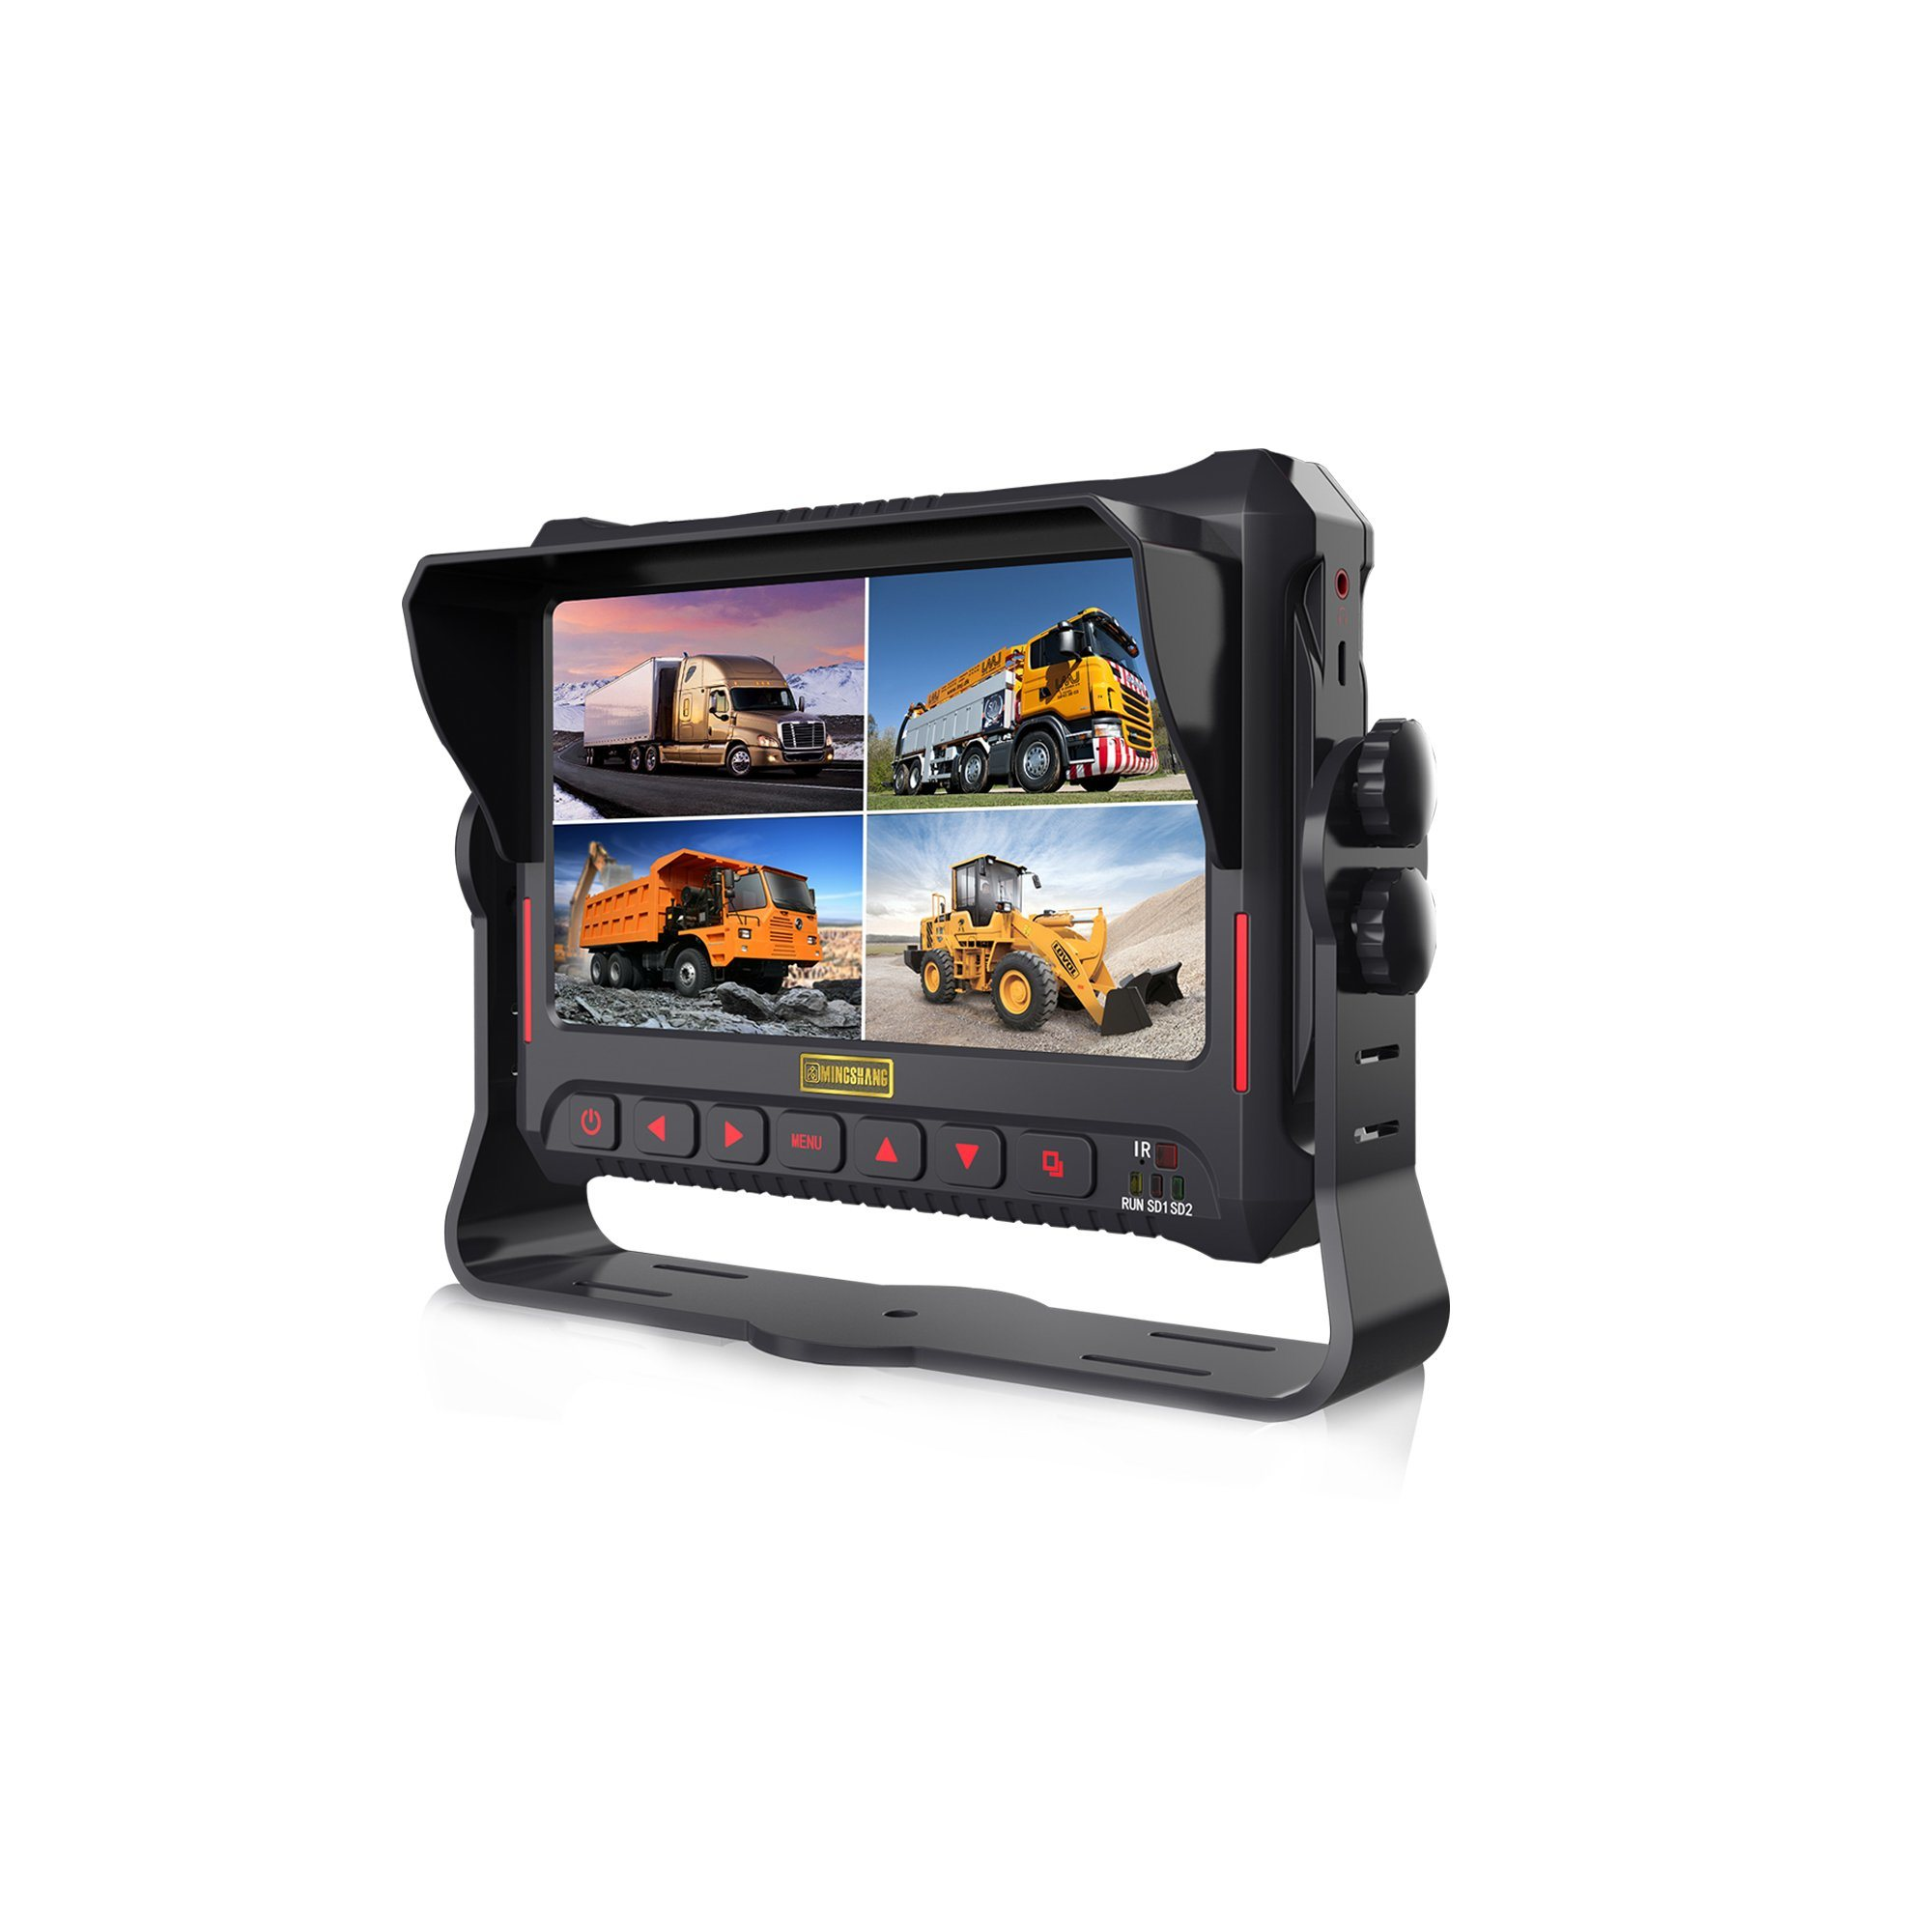 7 Inch Digital Video Monitor with DVR for Vehicles Buses